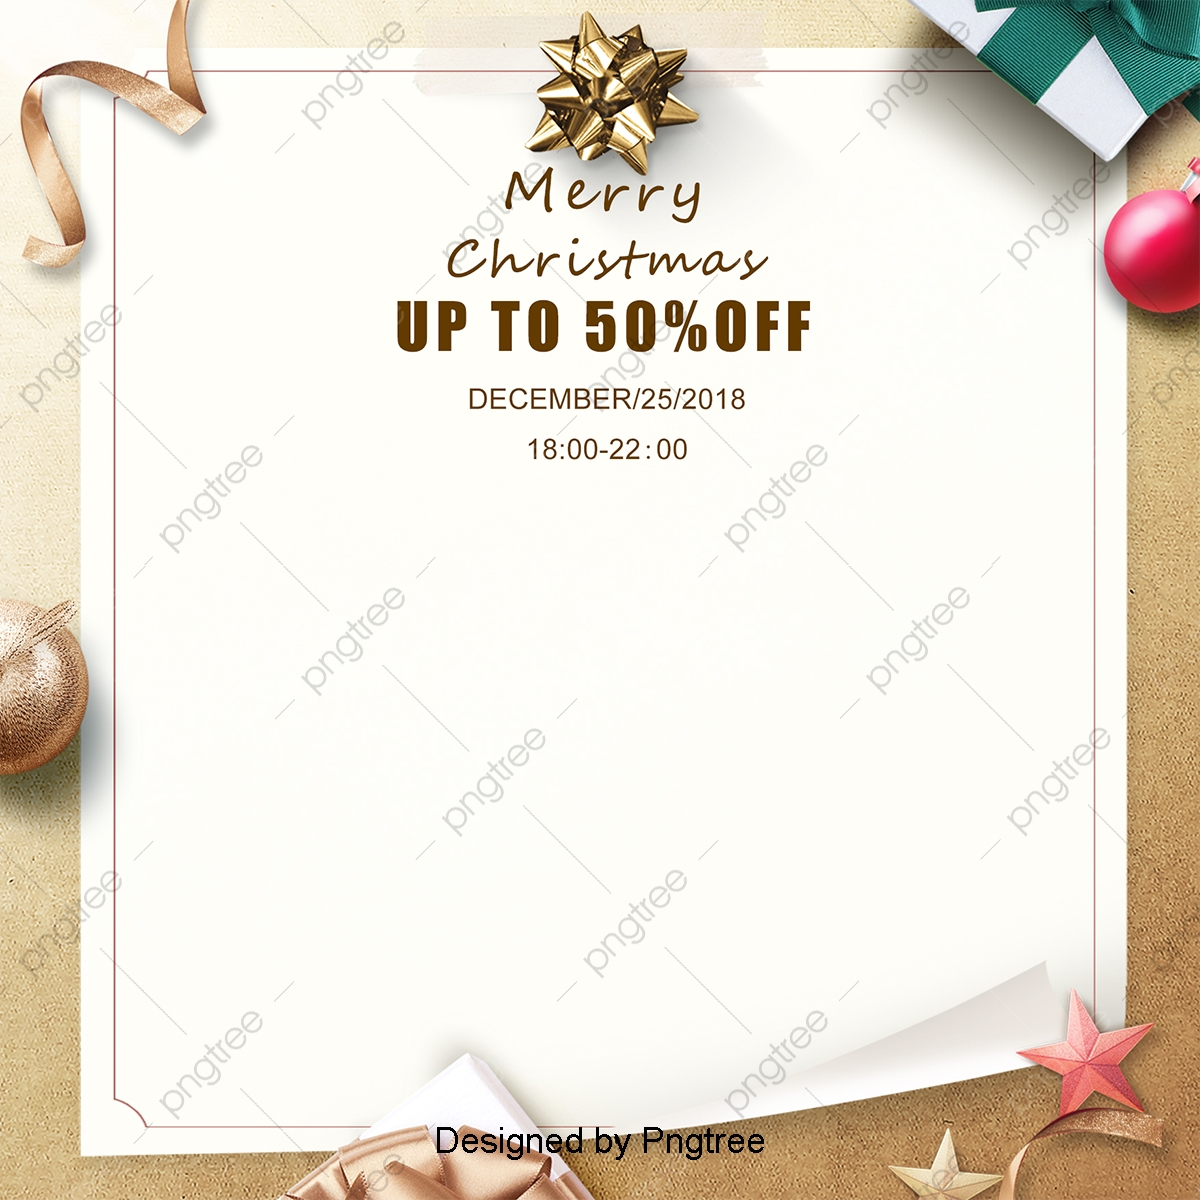 Christmas Invitation Background Png.Background Of Yellow Simple Christmas Invitation Letter